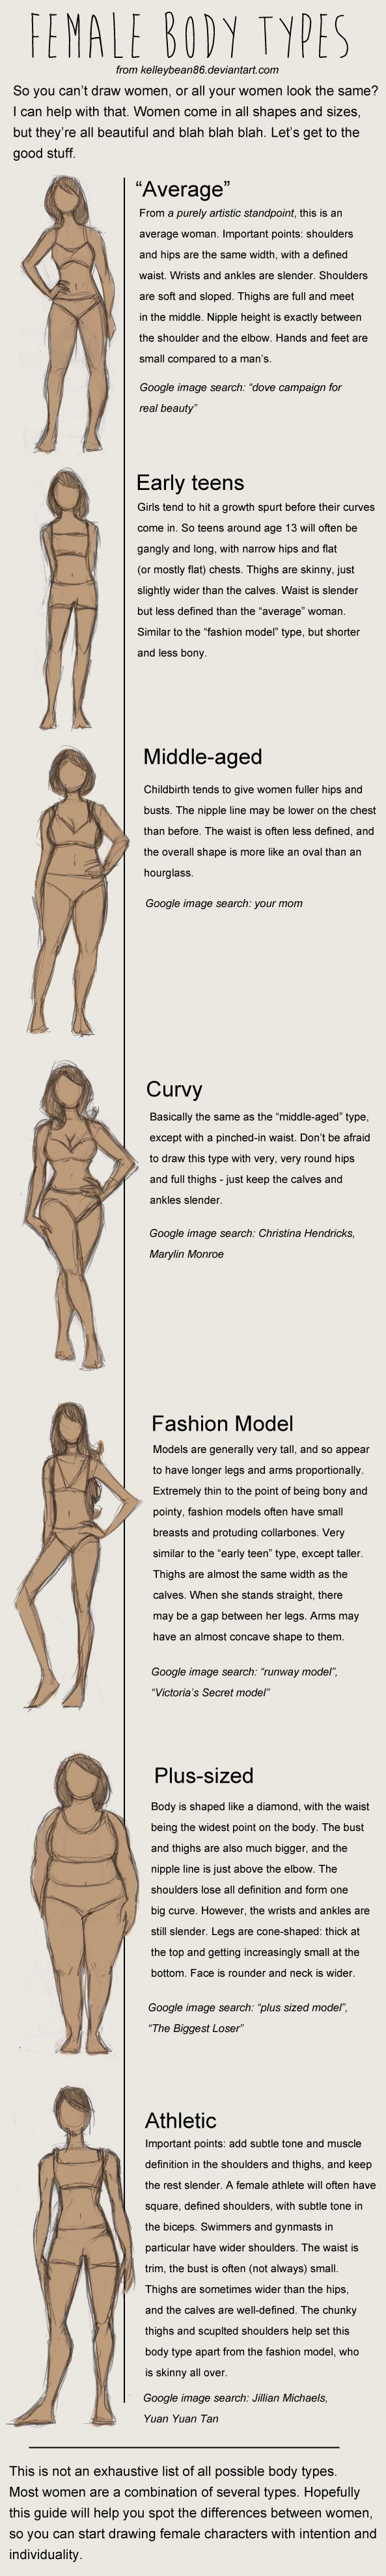 Draw Female Body Types by ~kelleybean86 on deviantART  This is really interesting